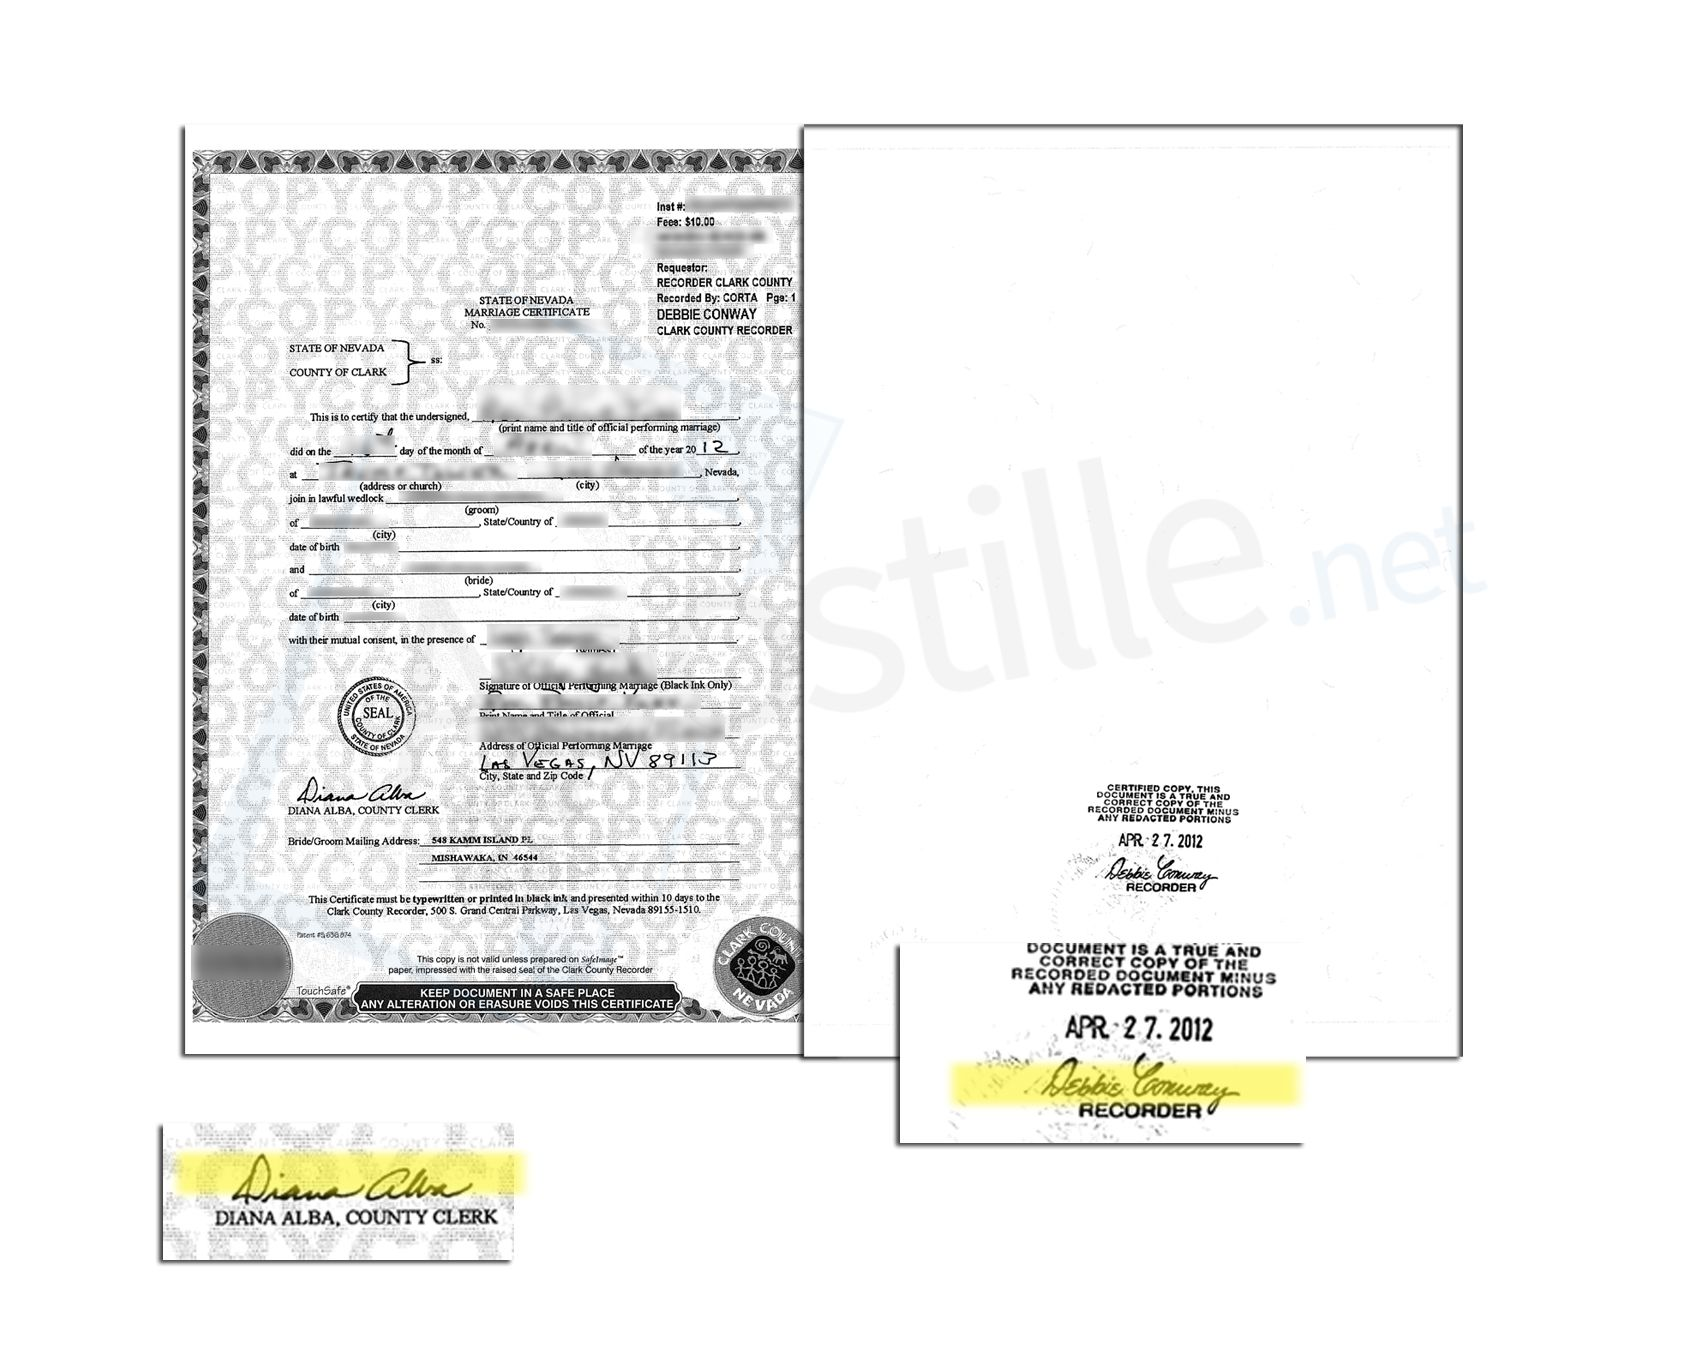 State Of Nevada Marriage Certificate Issued By Diana Alba County